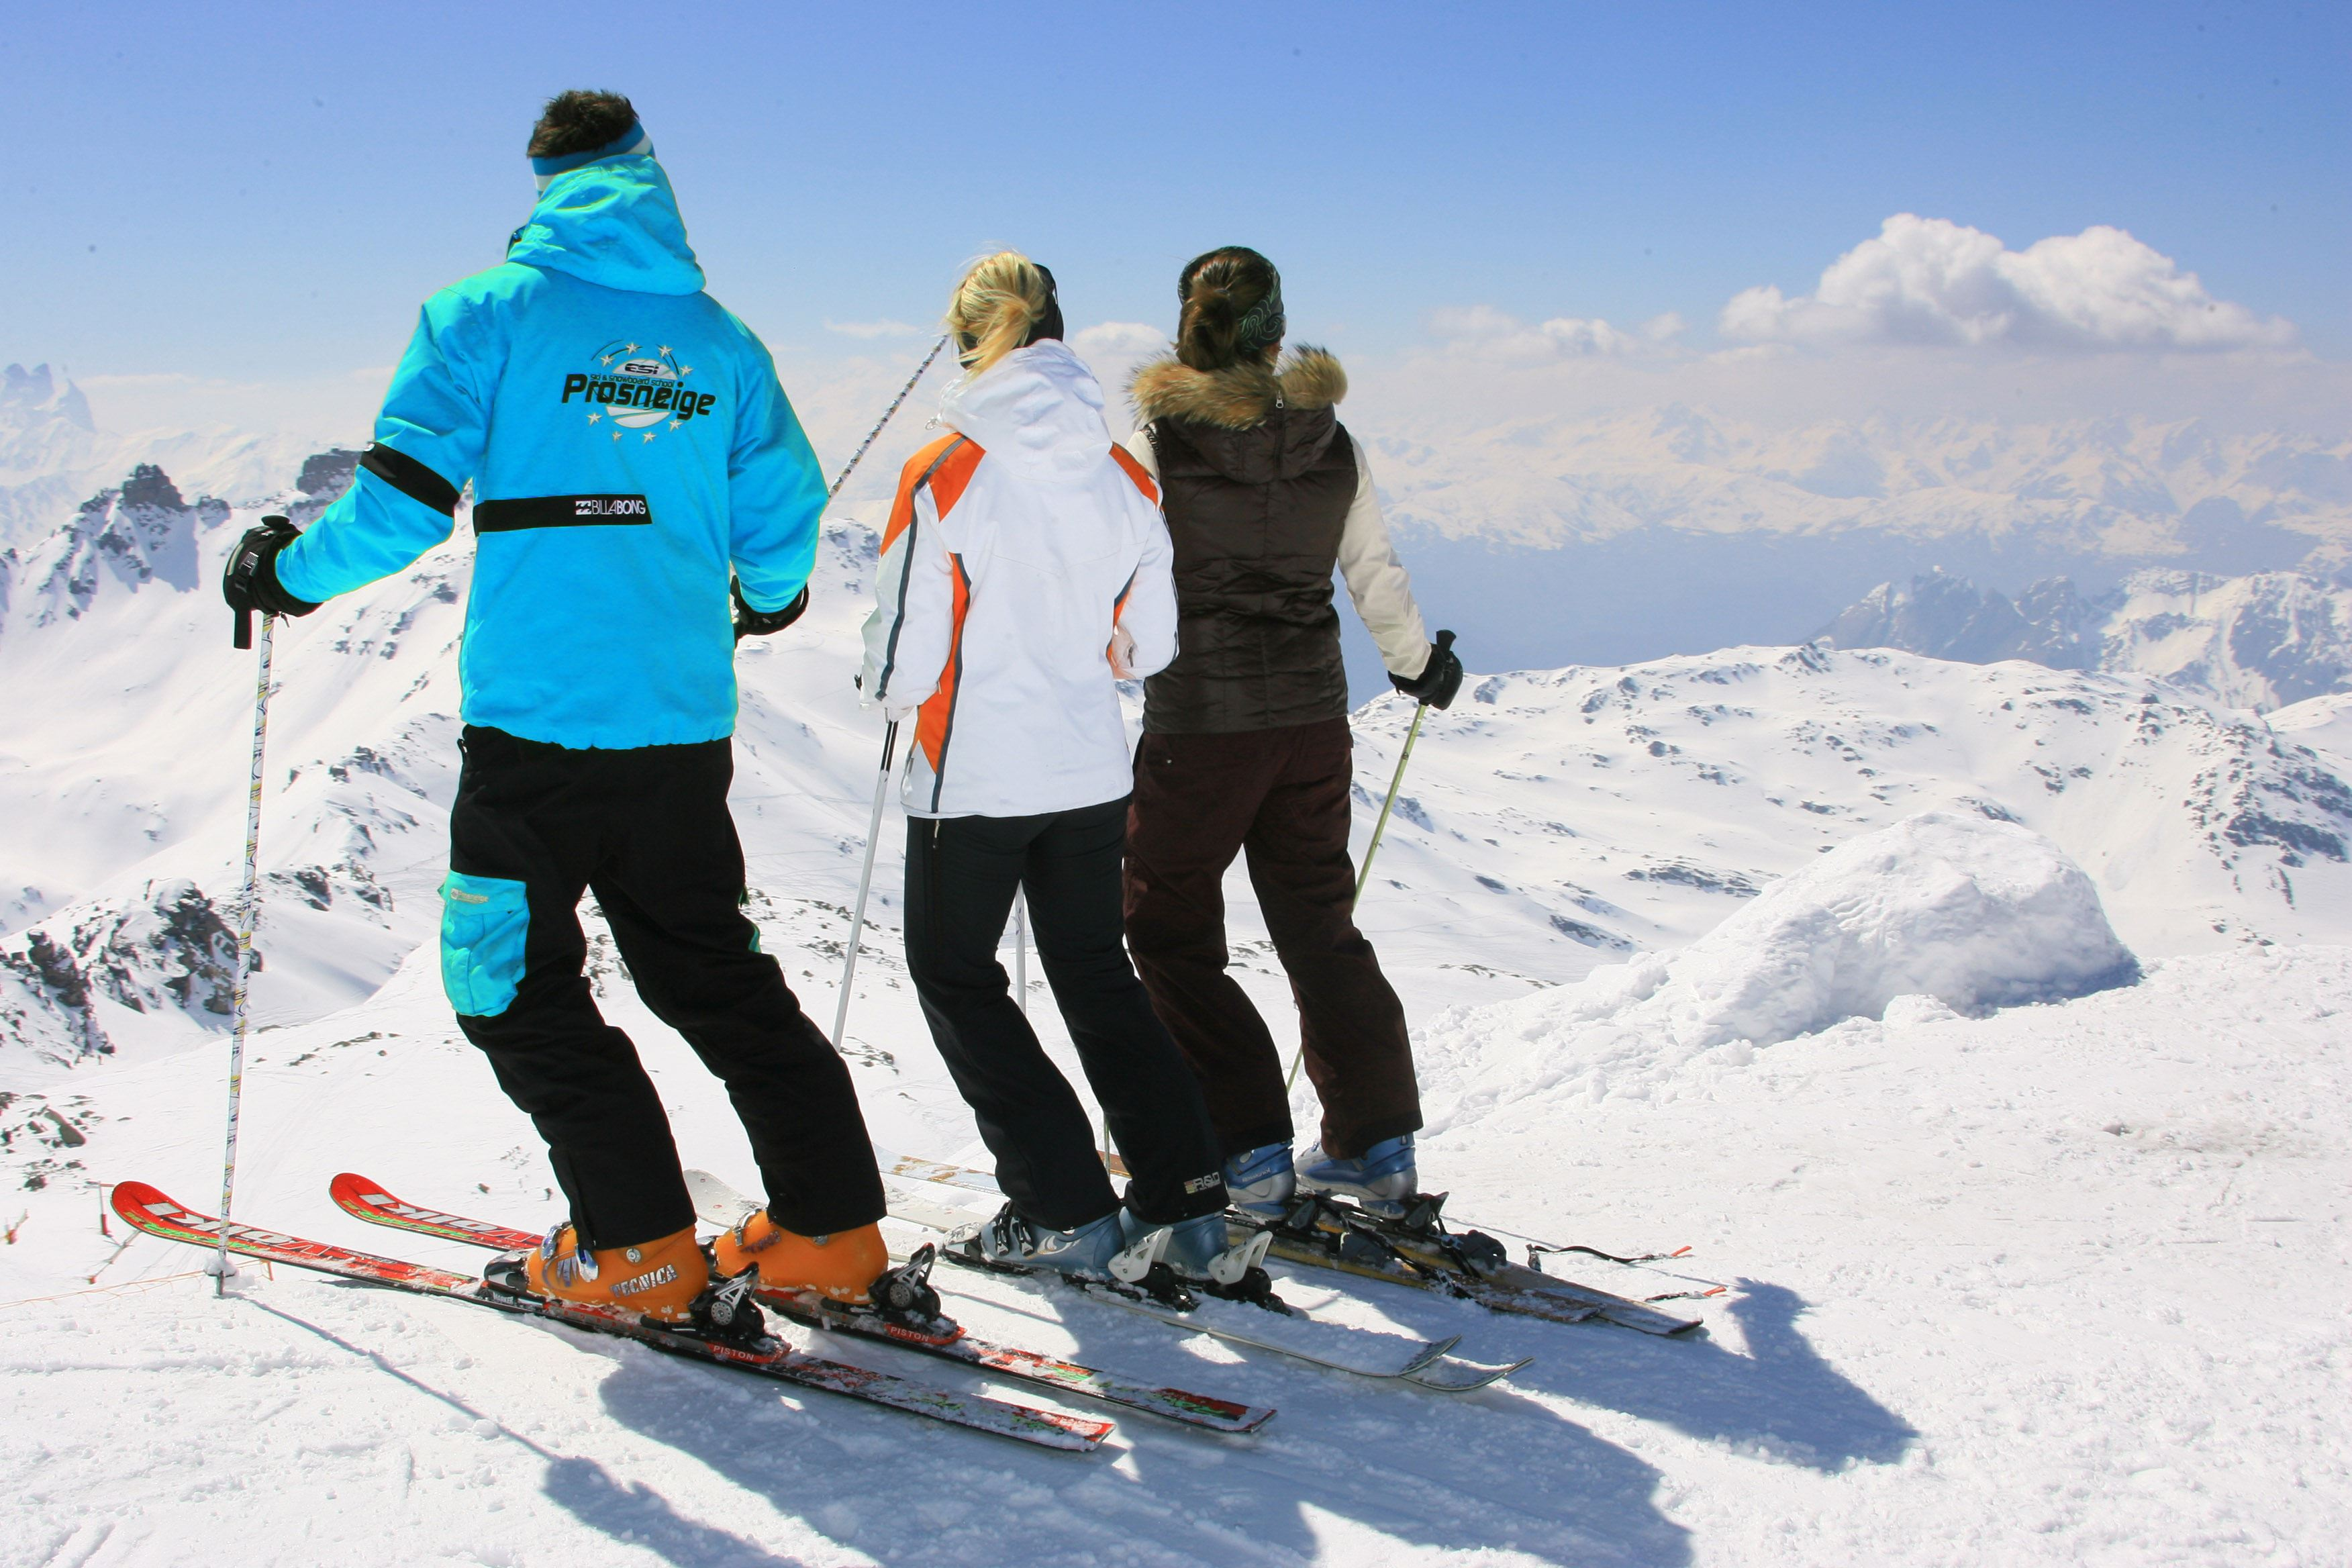 Afternoon adult ski Group lessons - Prosneige